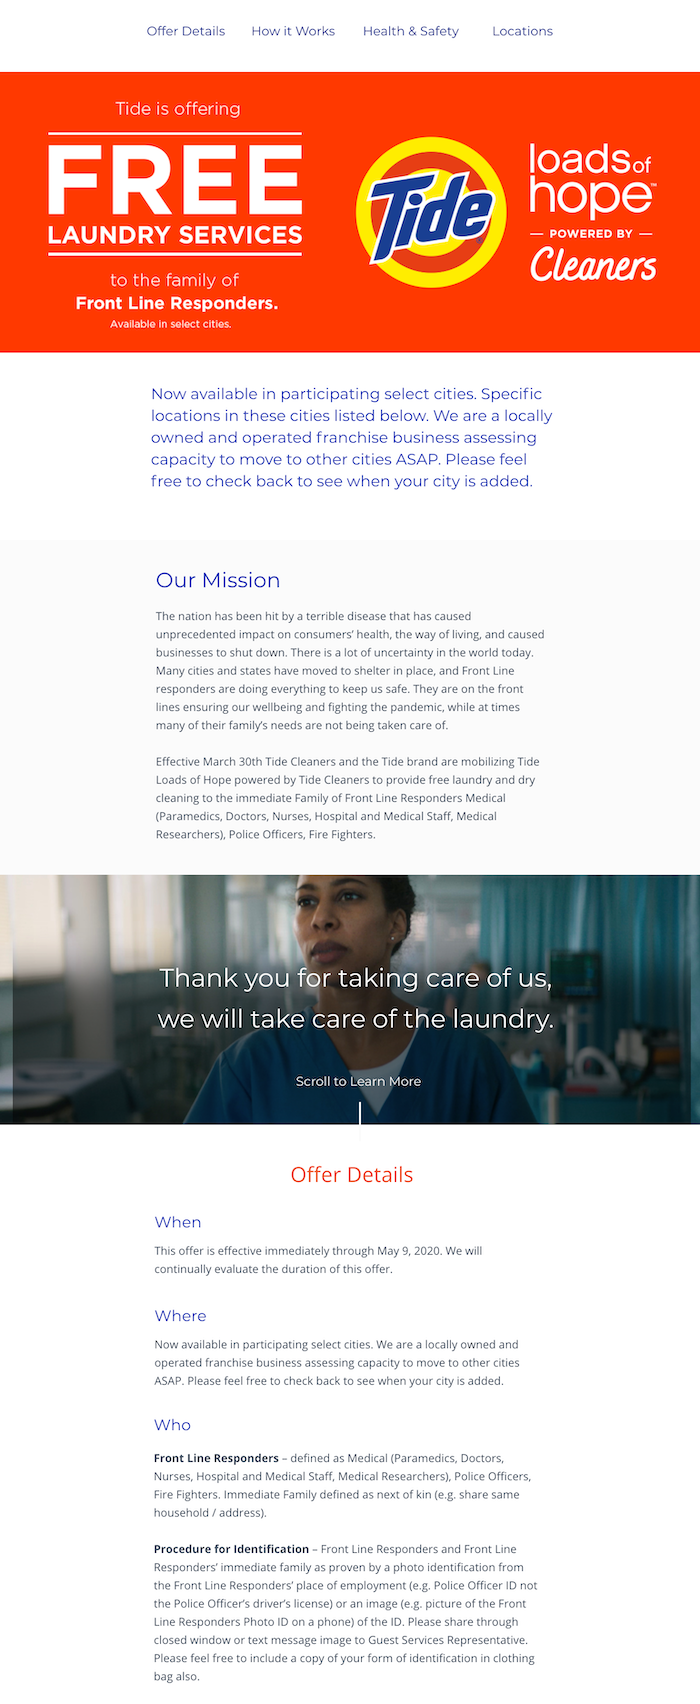 Tide Cleaners free laundry landing page